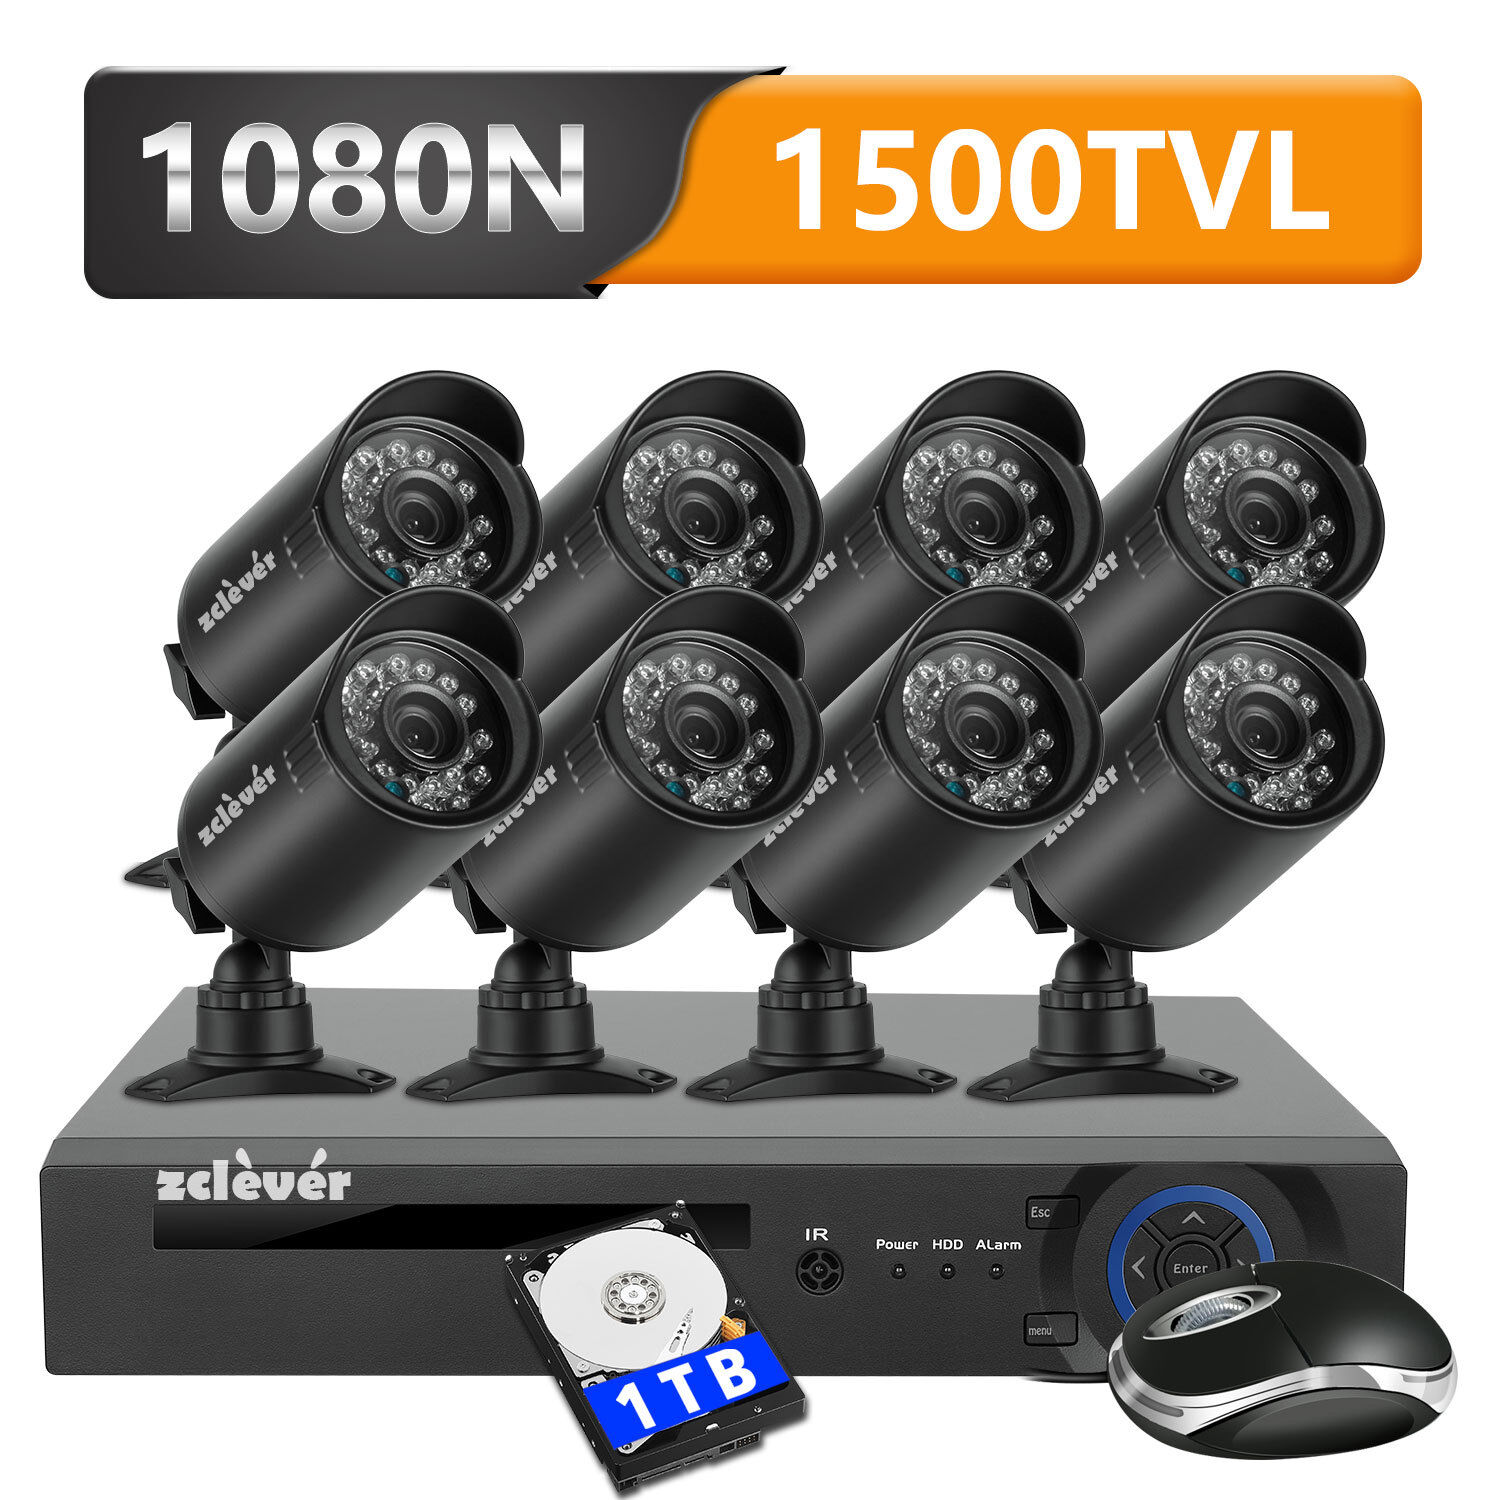 Zclever 8CH CCTV Home Security Camera System 1080N HDMI DVR